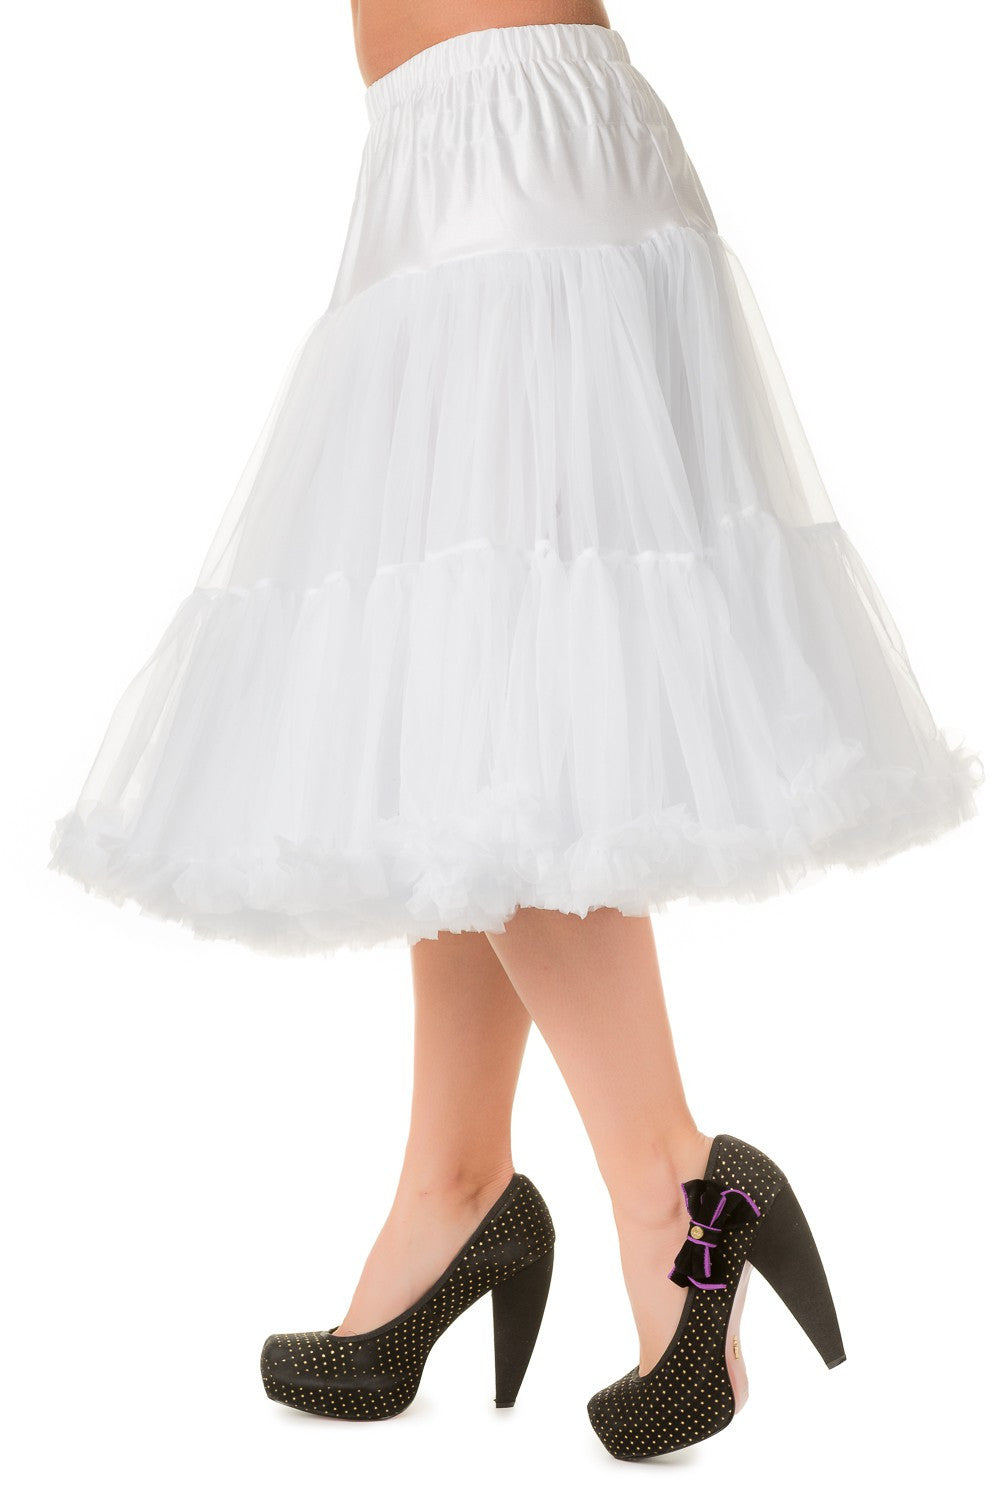 Lifeforms Petticoat in White